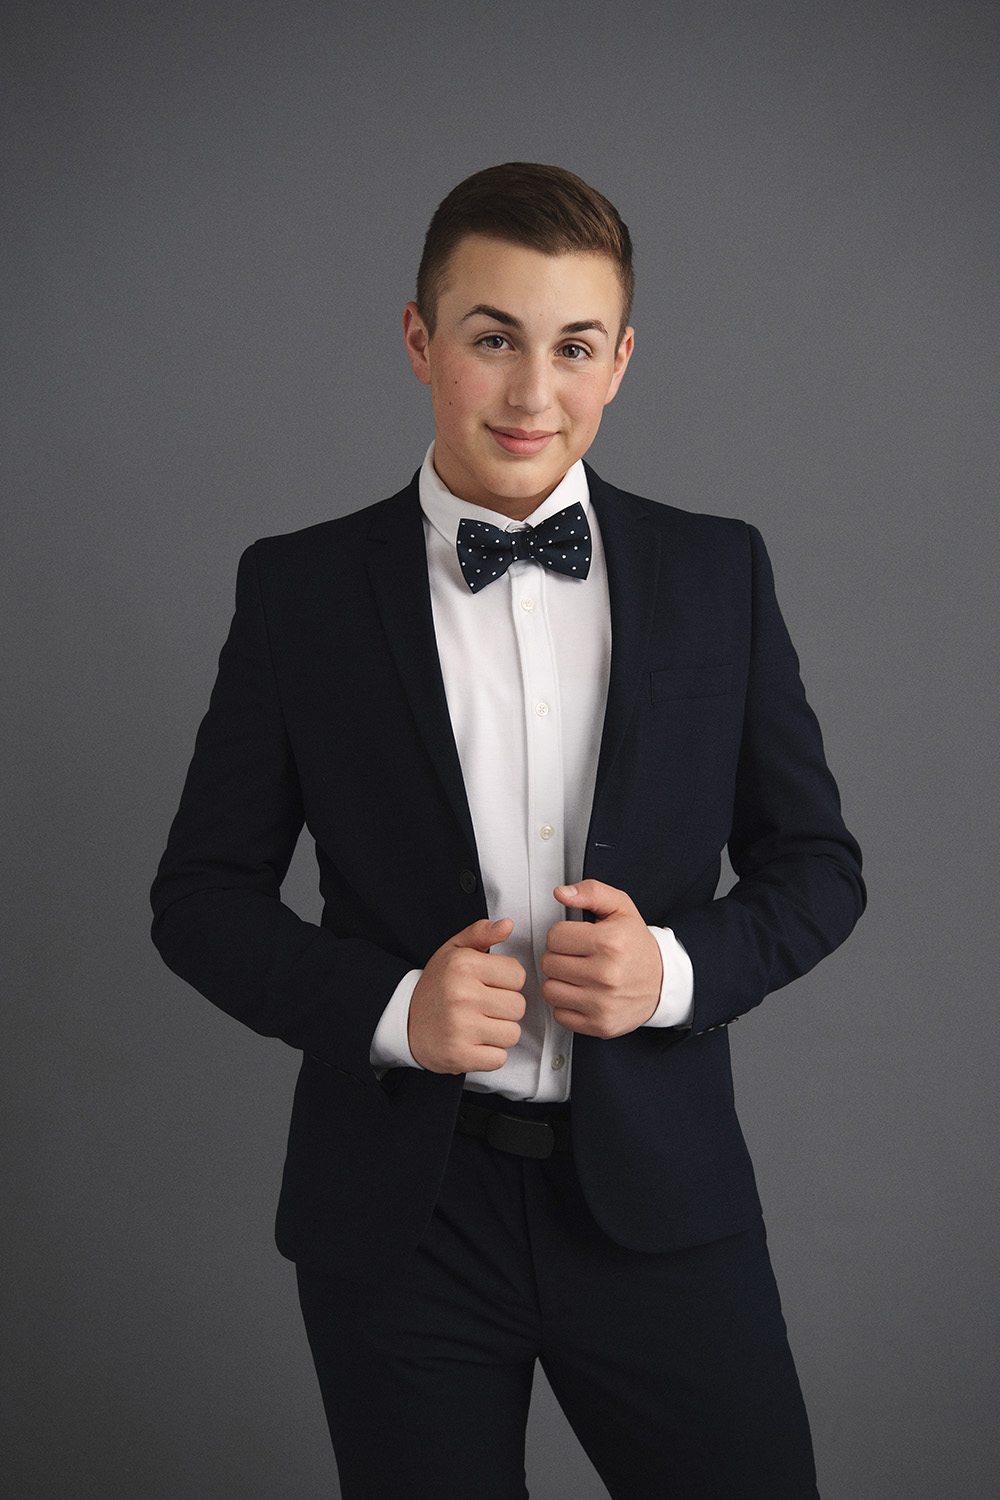 Studio B Portraits_Handsome boy in suit and bowtie.jpg